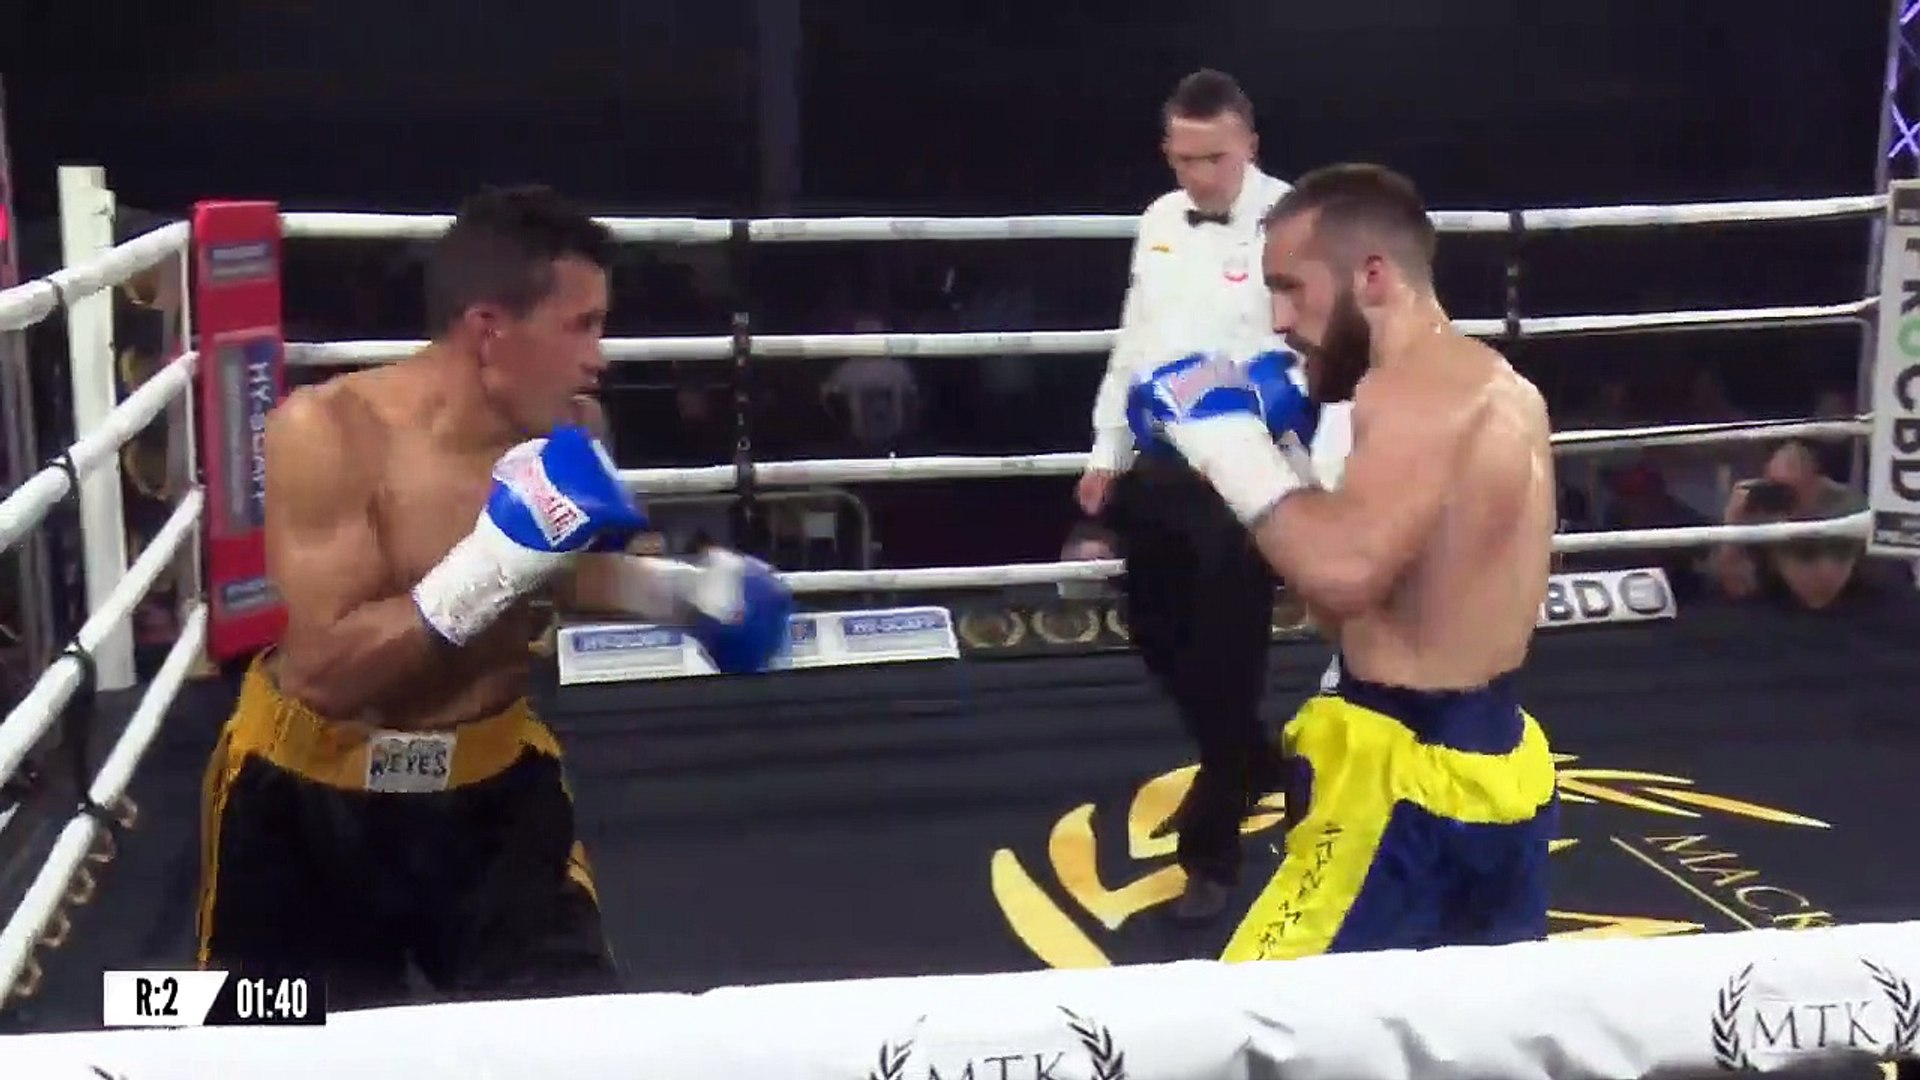 Angelo Dragone vs Michael Isaac Carrero (01-03-2019) Full Fight 720 x 1280